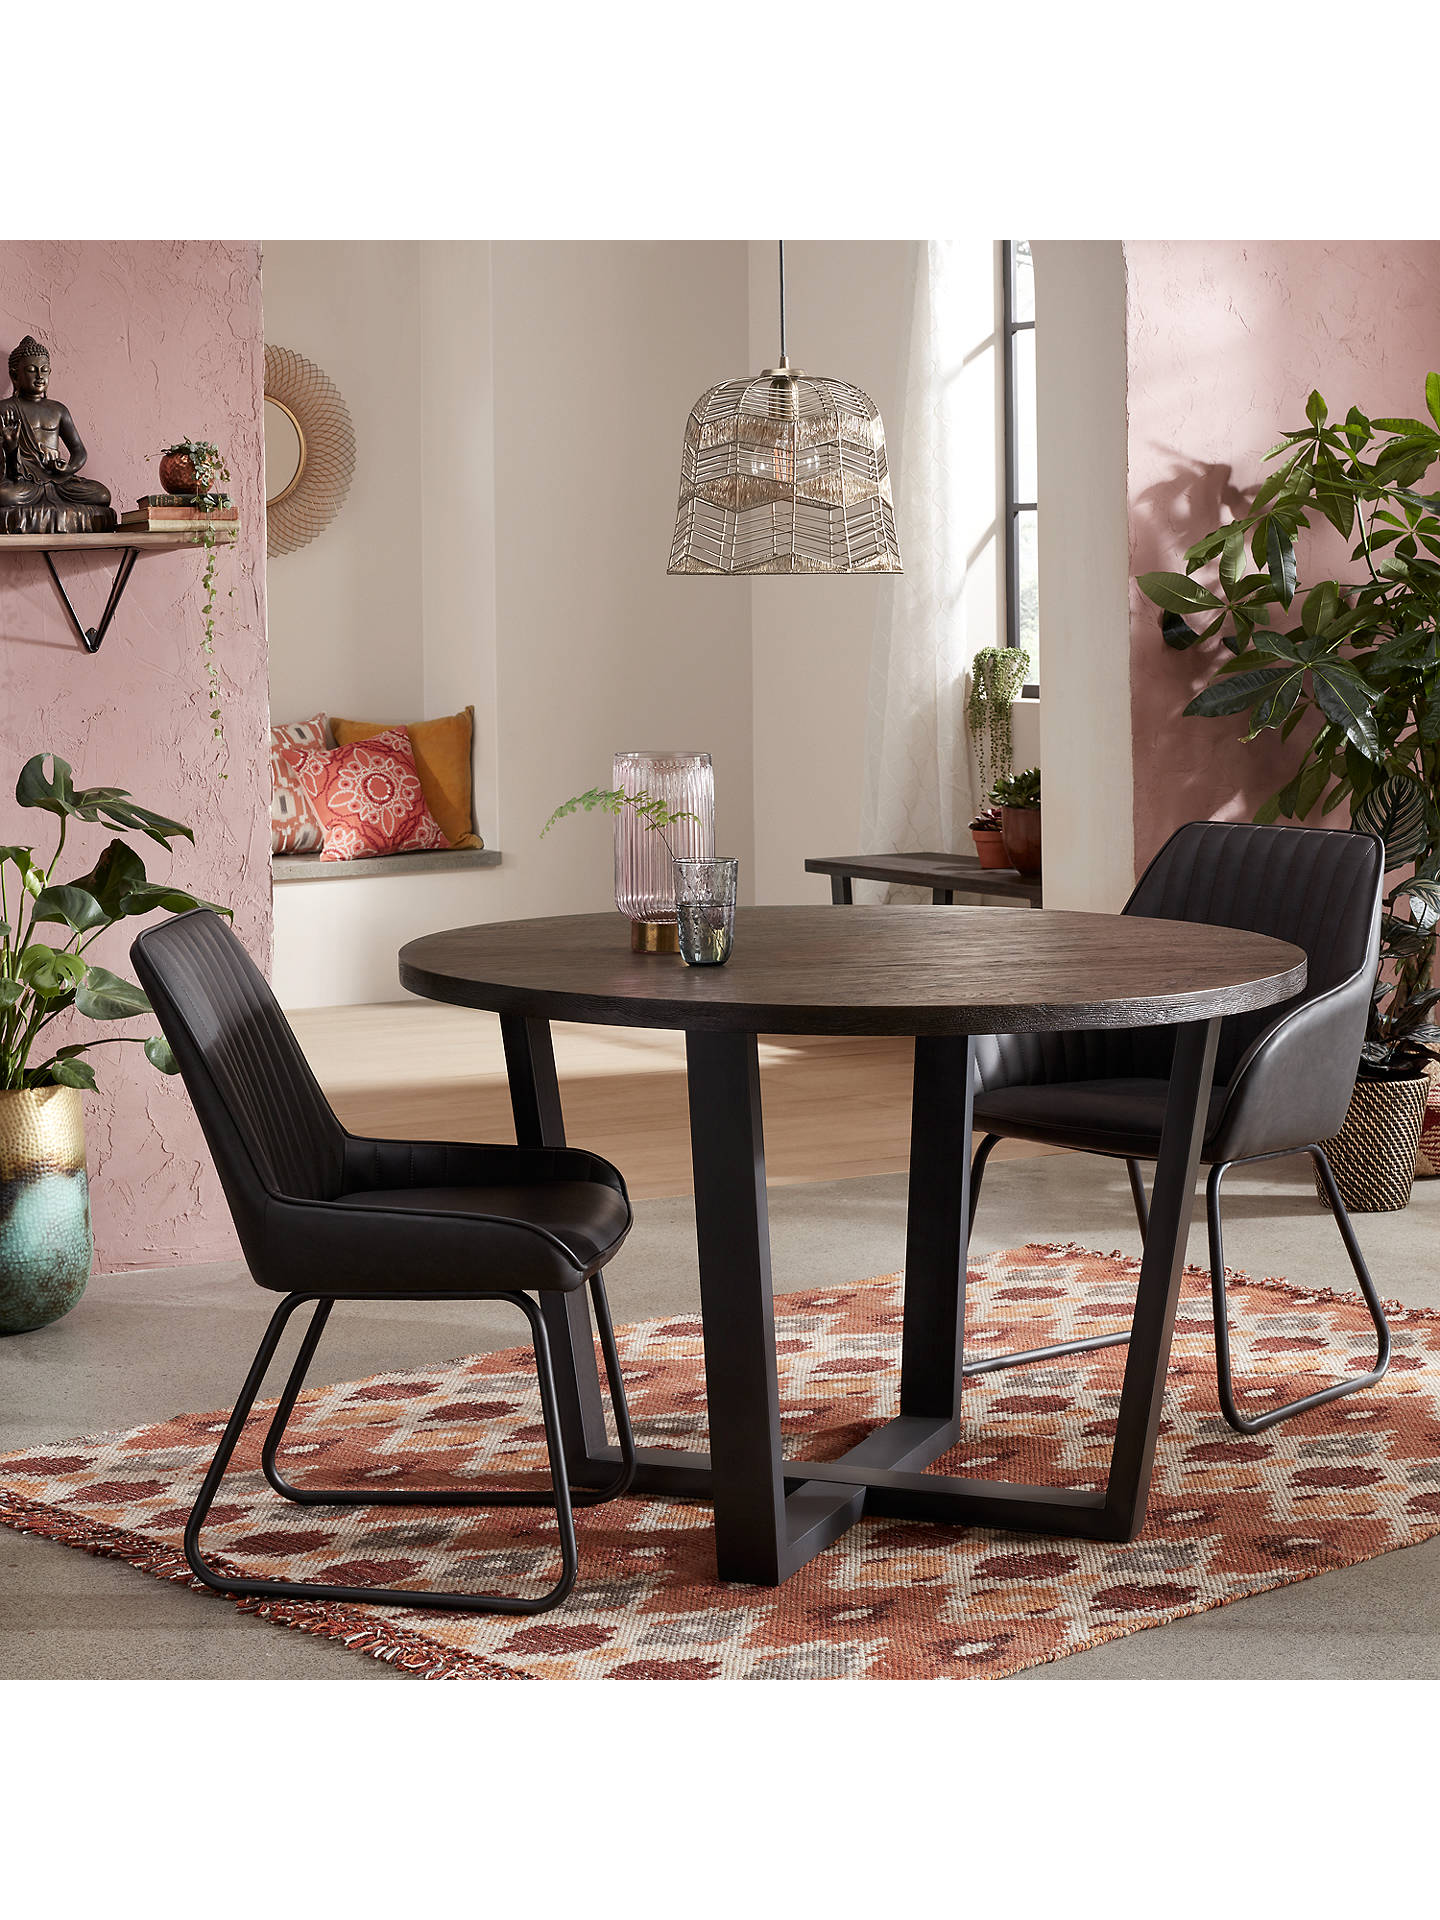 Buy John Lewis & Partners Brooks Dining Armchairs, Set of 2, Charcoal Online at johnlewis.com